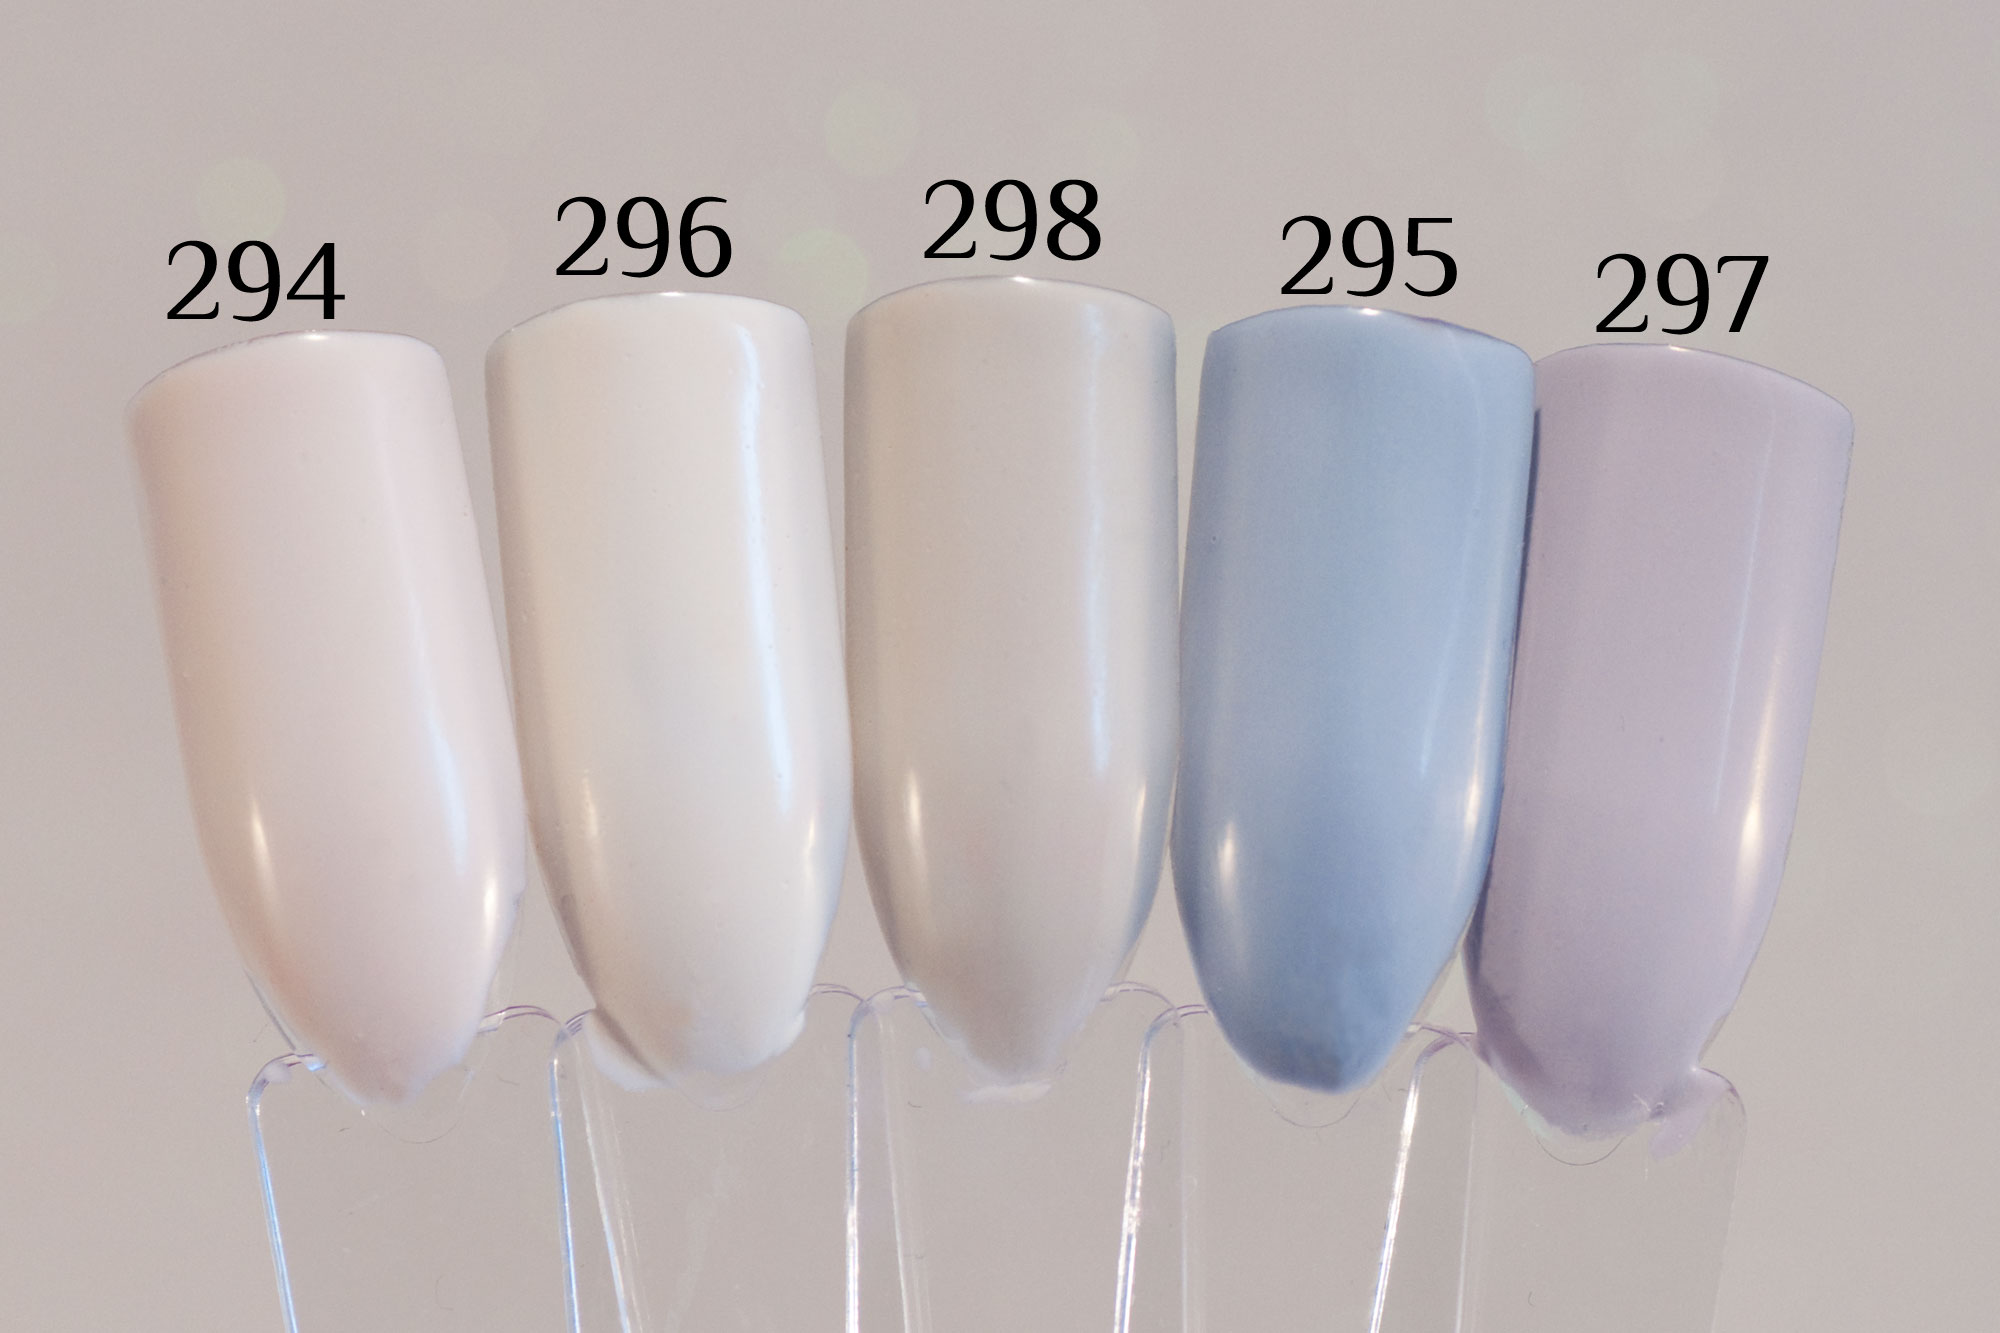 Pink Gellac Uncovered 6 Collection Swatches - comparison